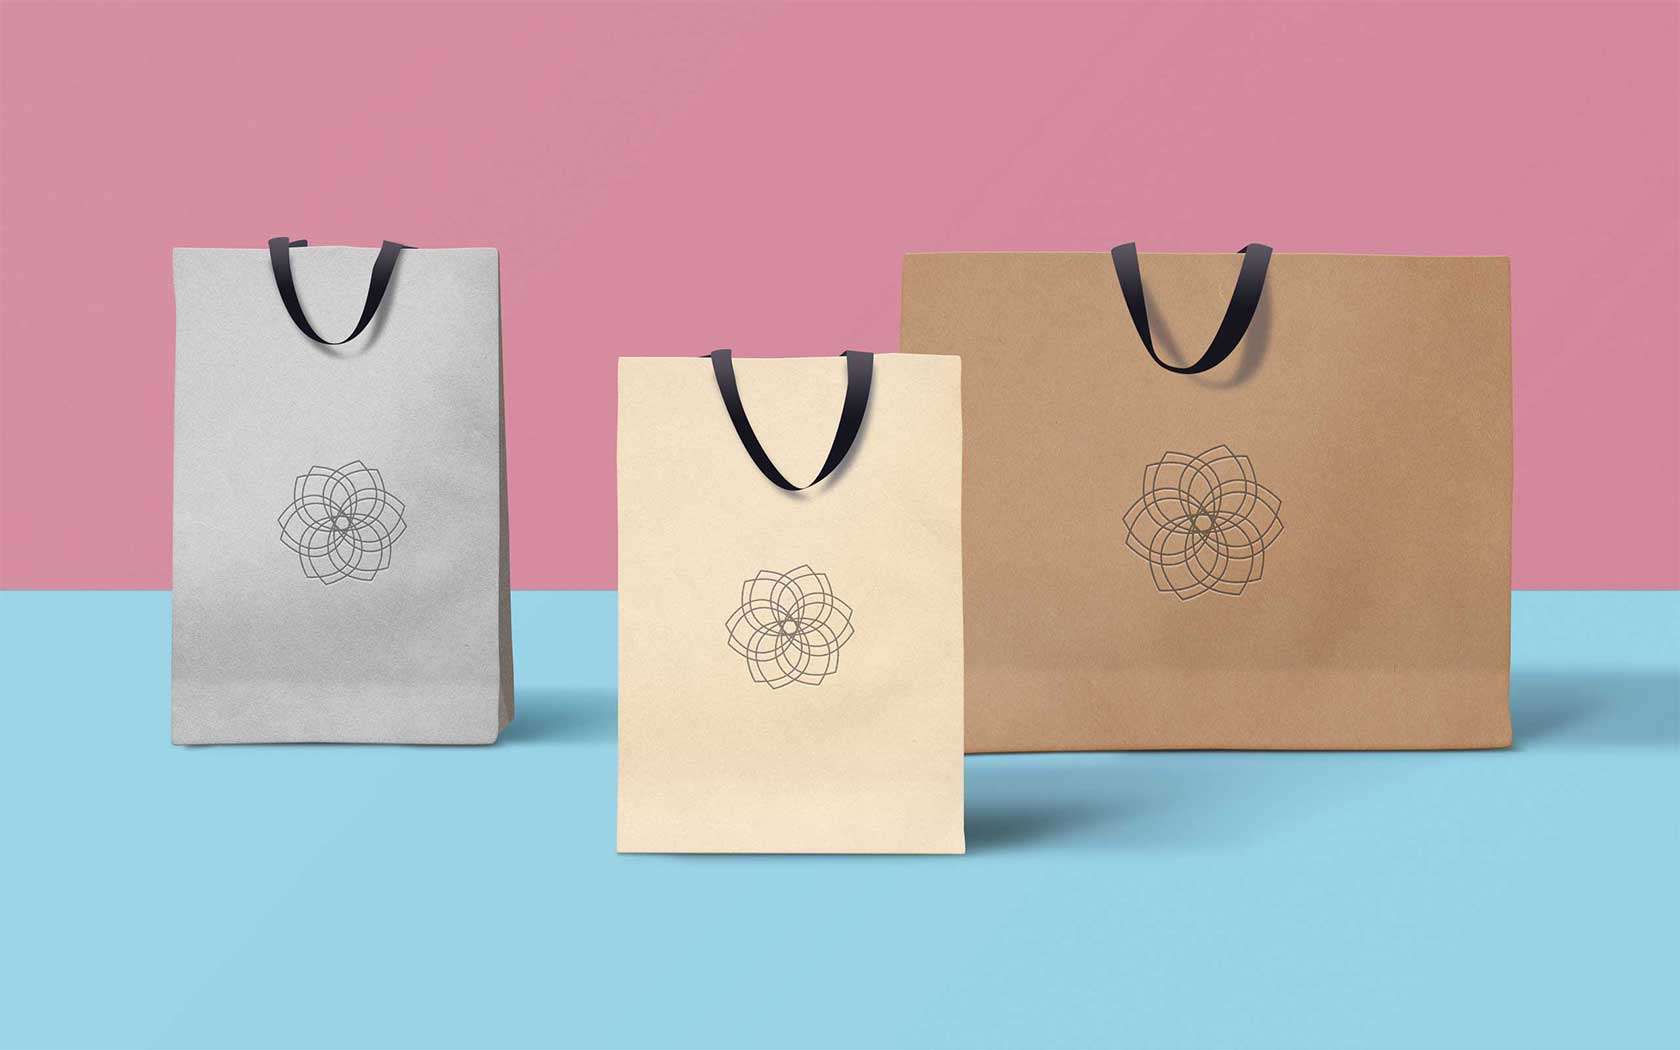 Concept branding of assorted paper bags